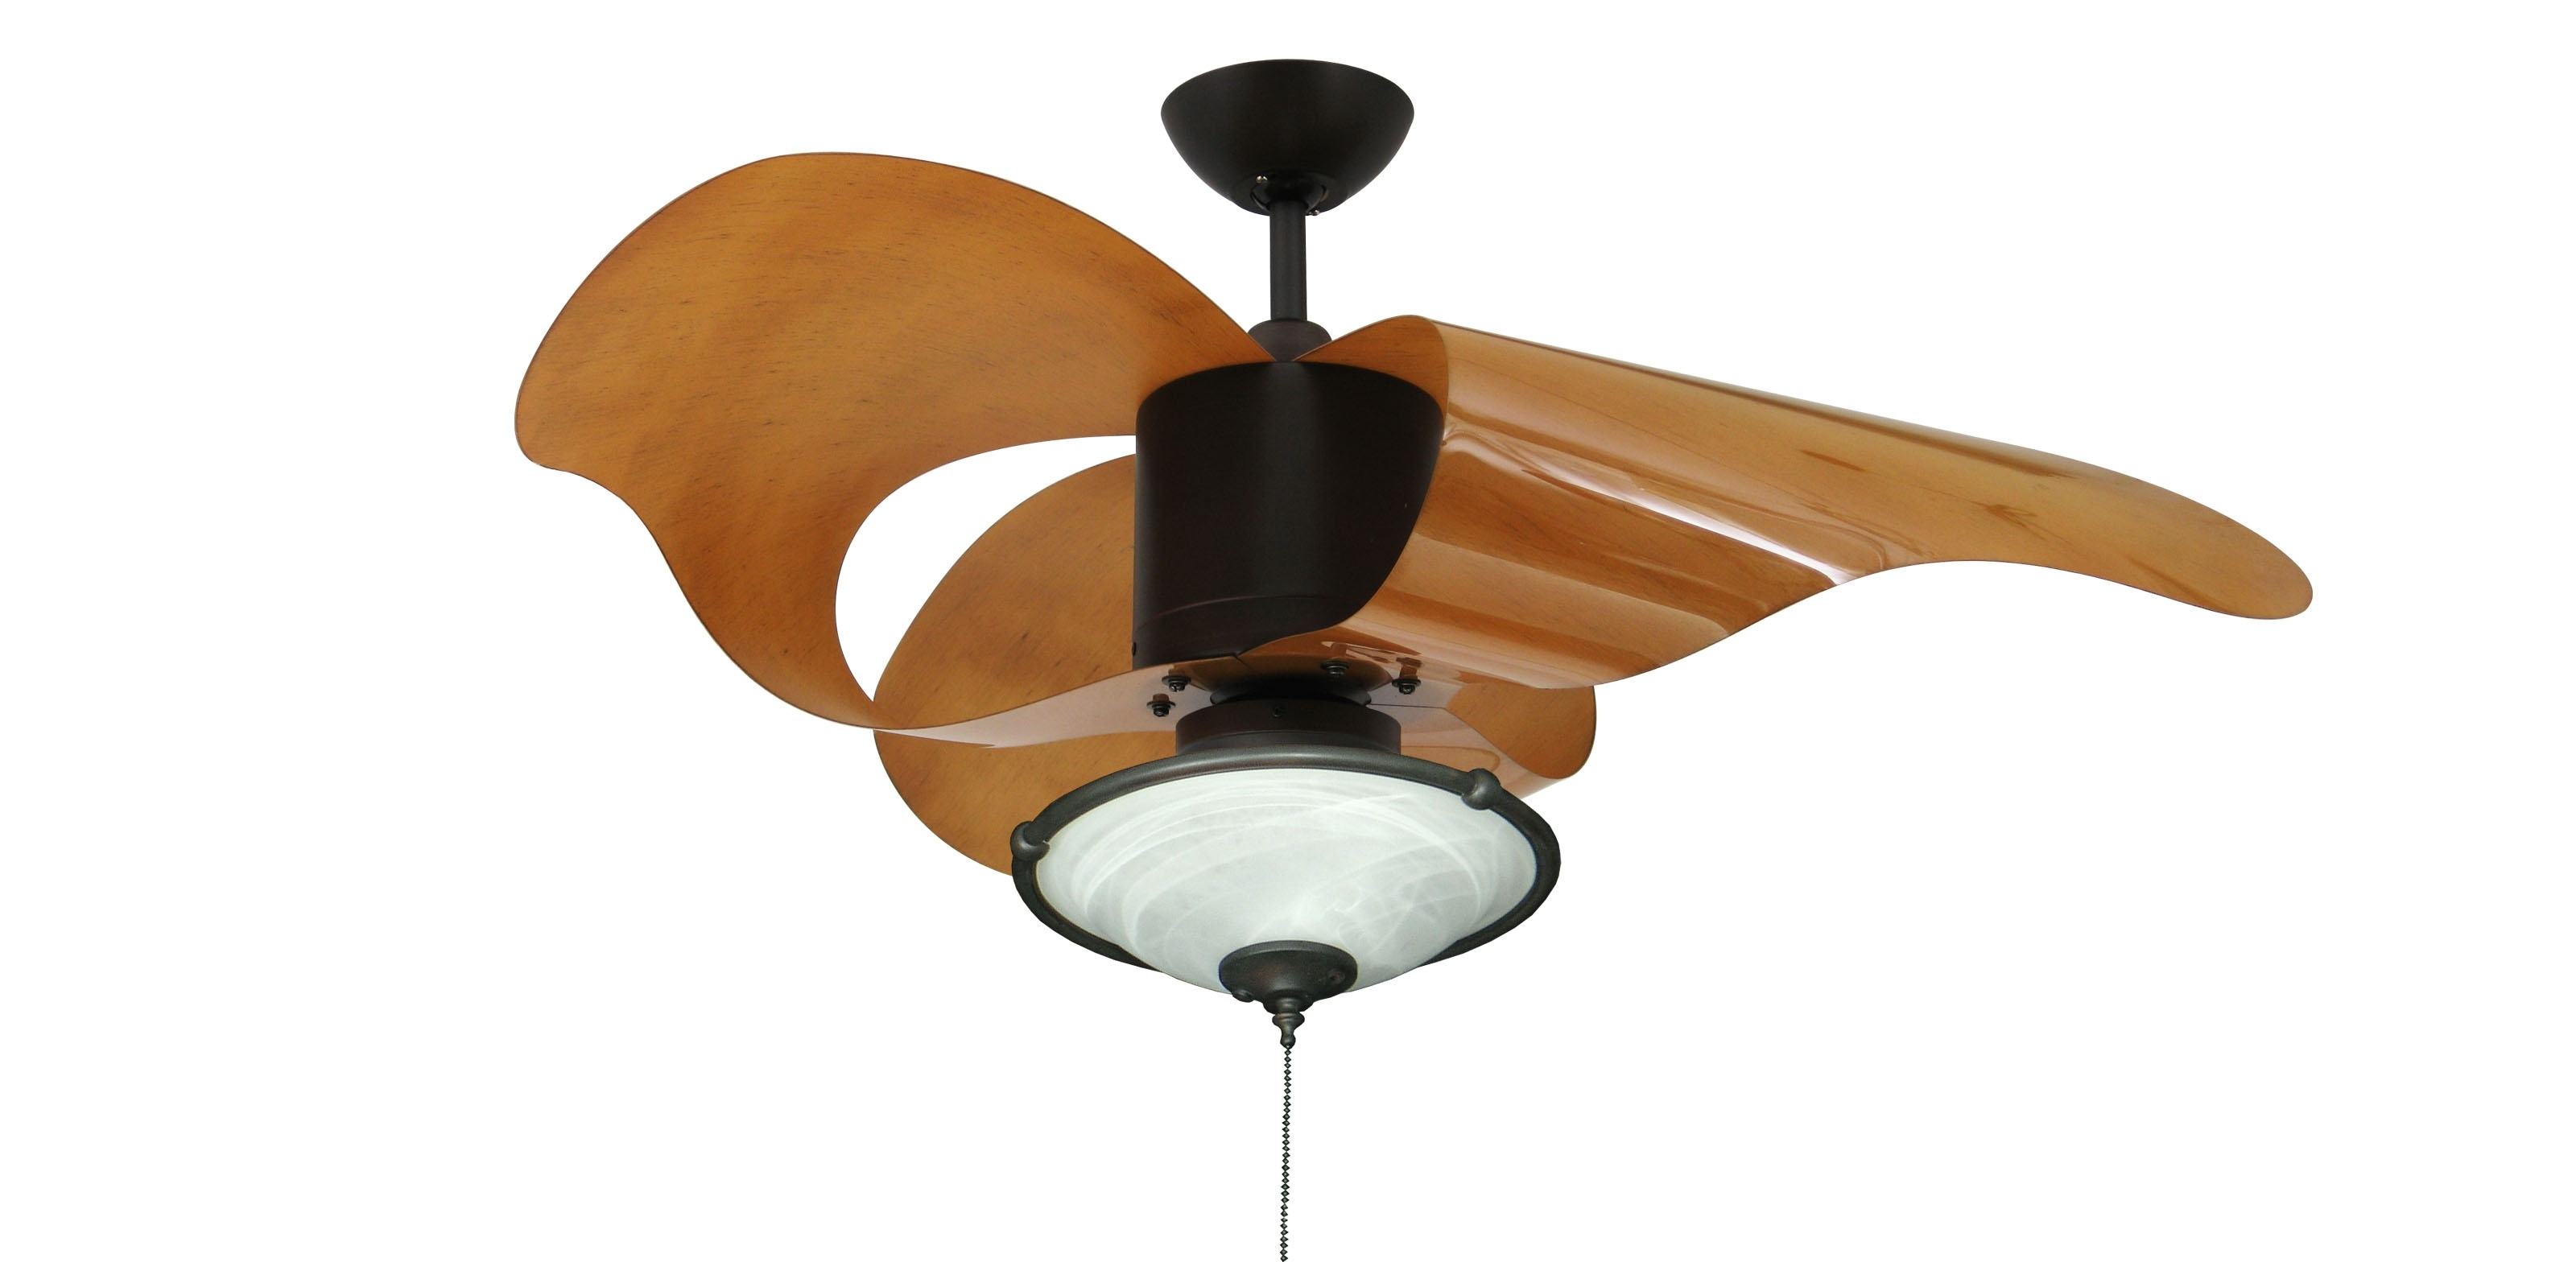 Latest Outdoor Ceiling Fan With Light And Remote – Tariqalhanaee Throughout Outdoor Ceiling Fans With Remote And Light (View 18 of 20)